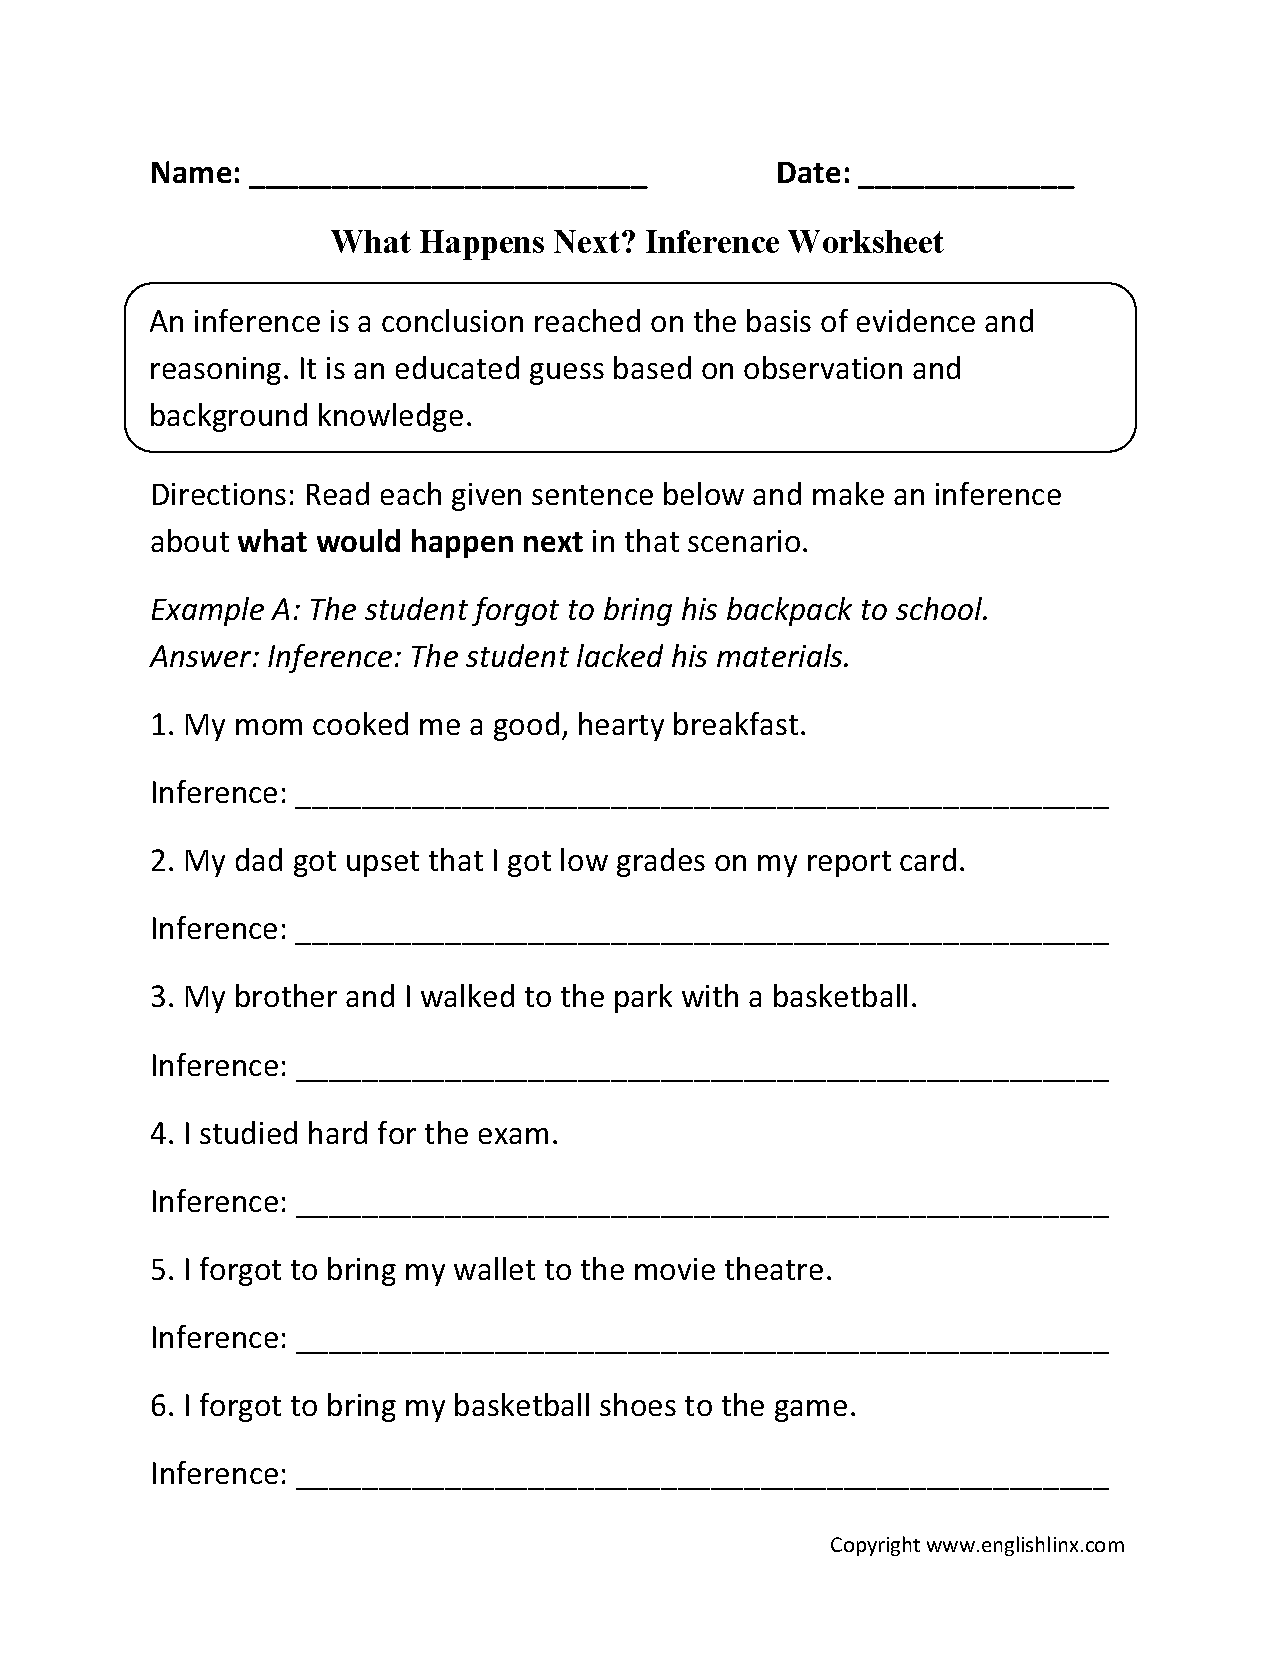 What Happens Next? Inference Worksheets | READING | Pinterest ...